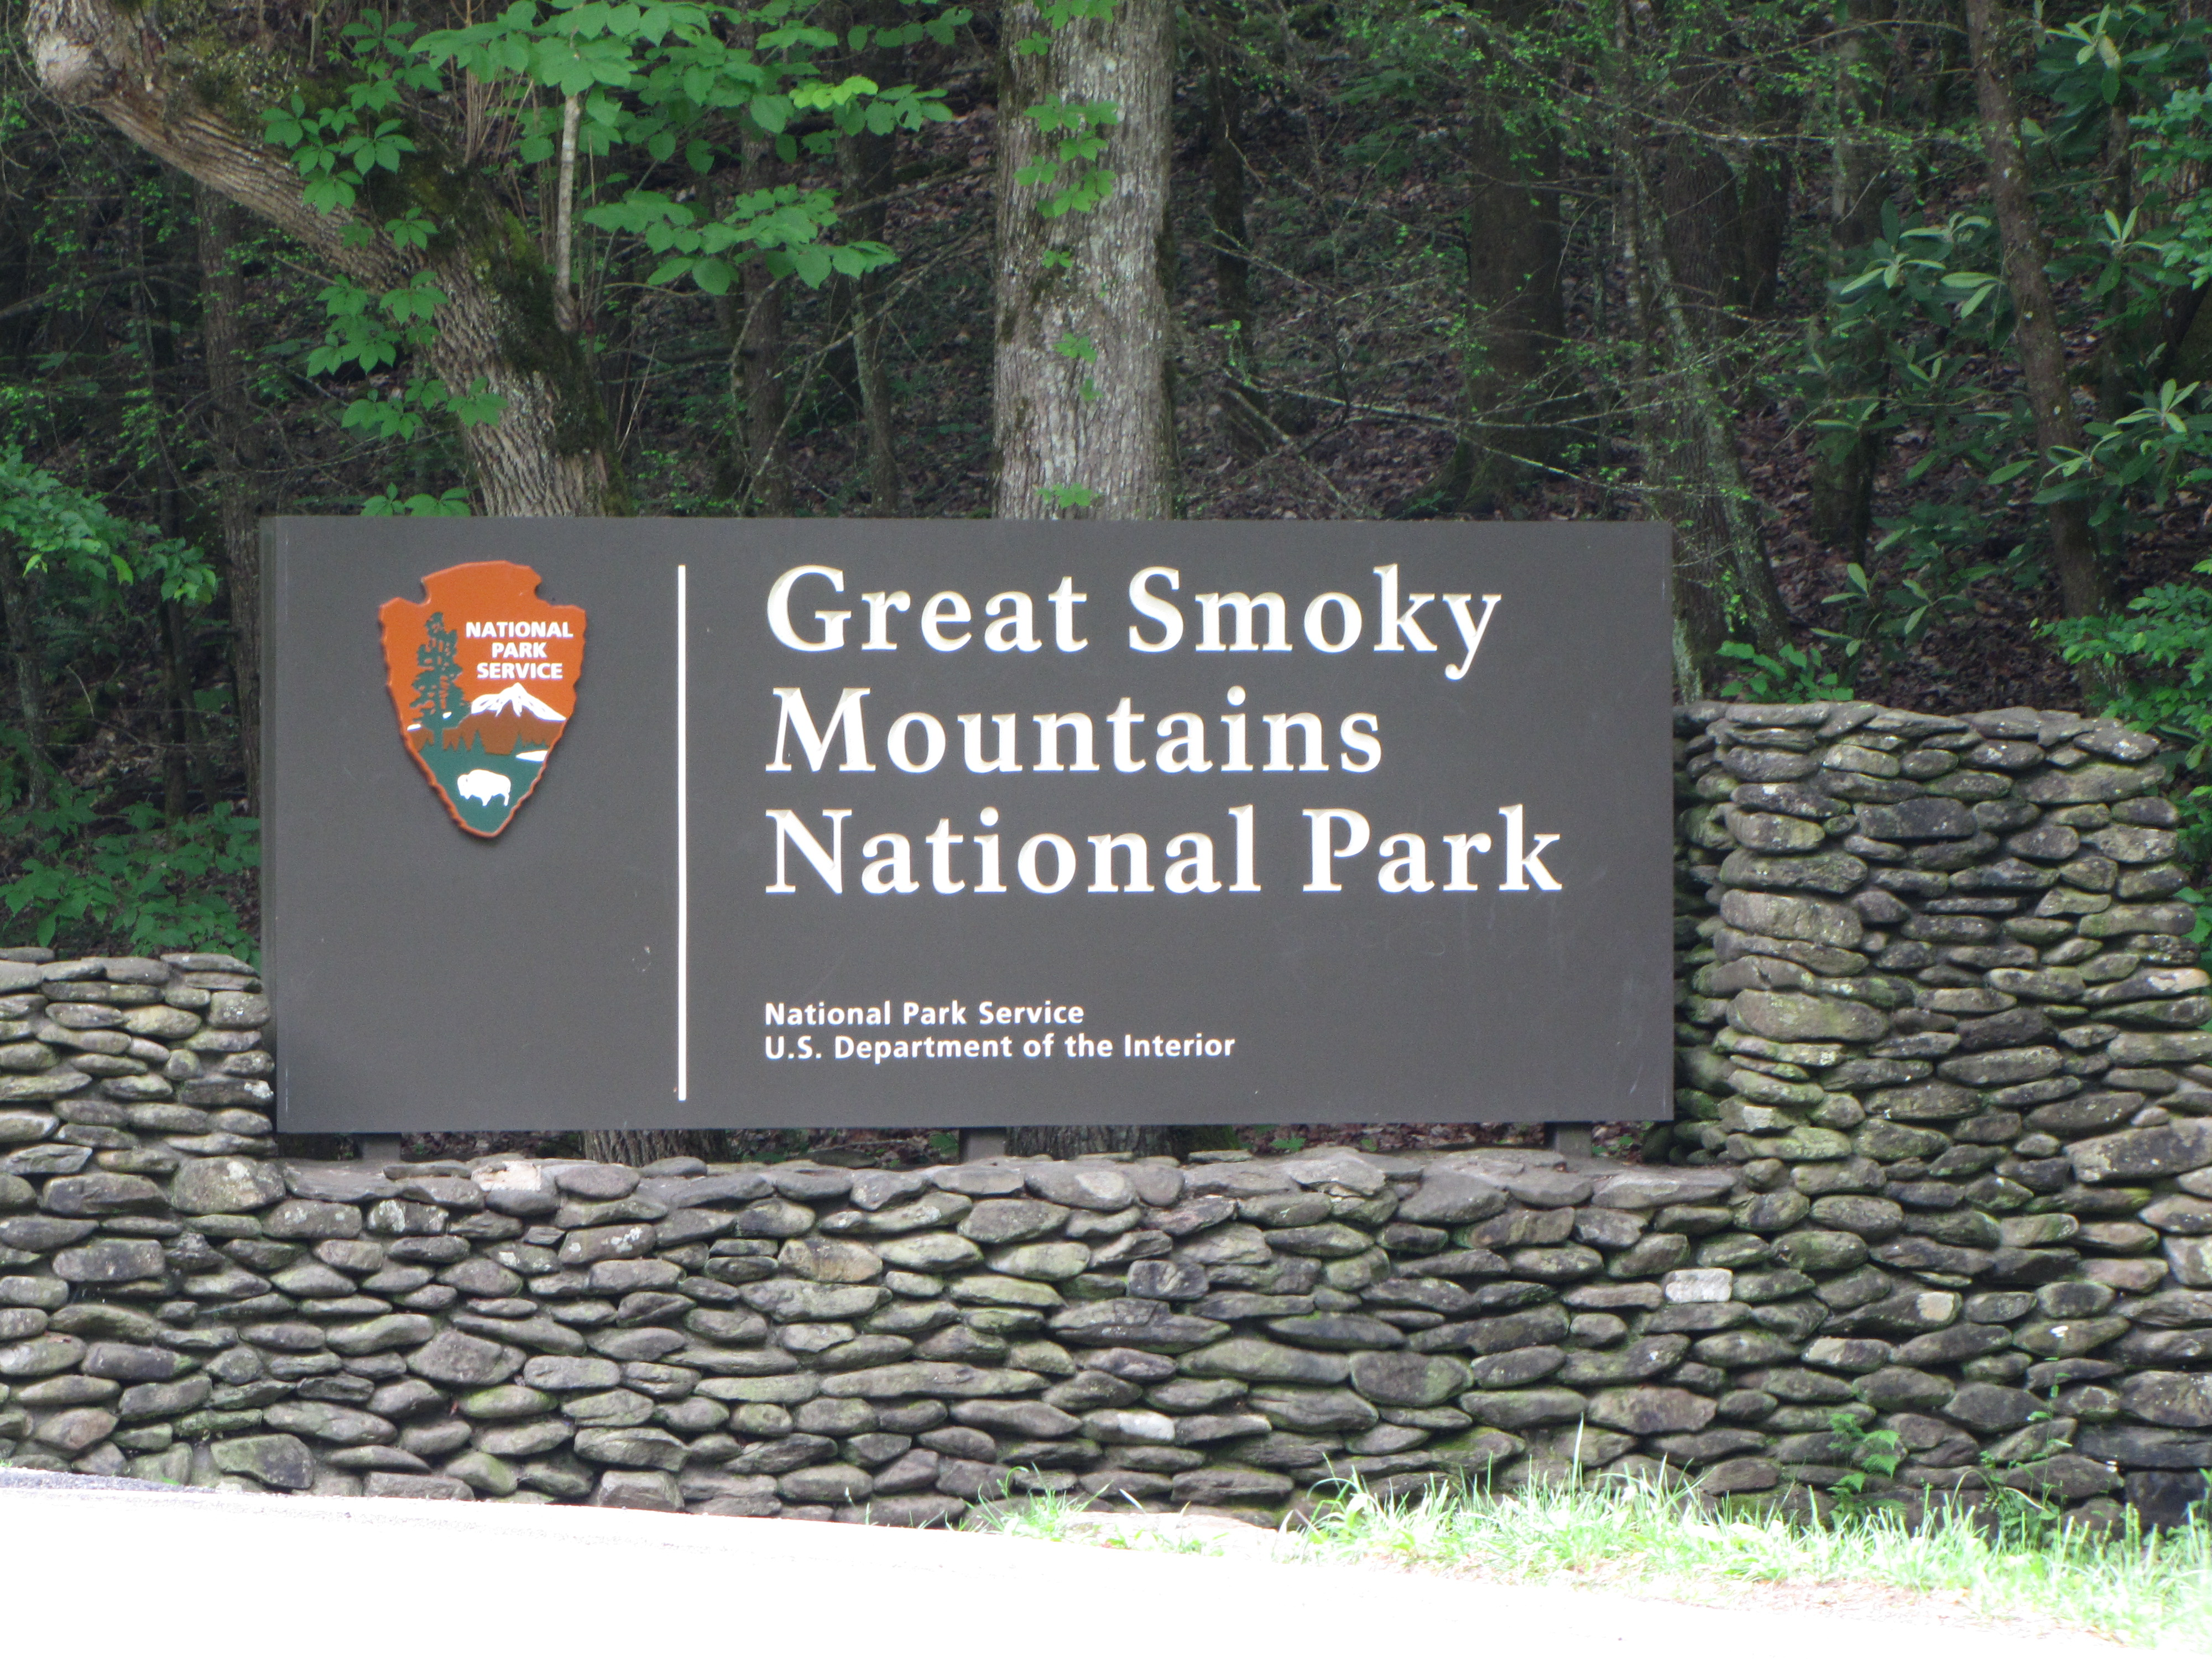 Entrance sign to the Great Smoky Mountains National Park